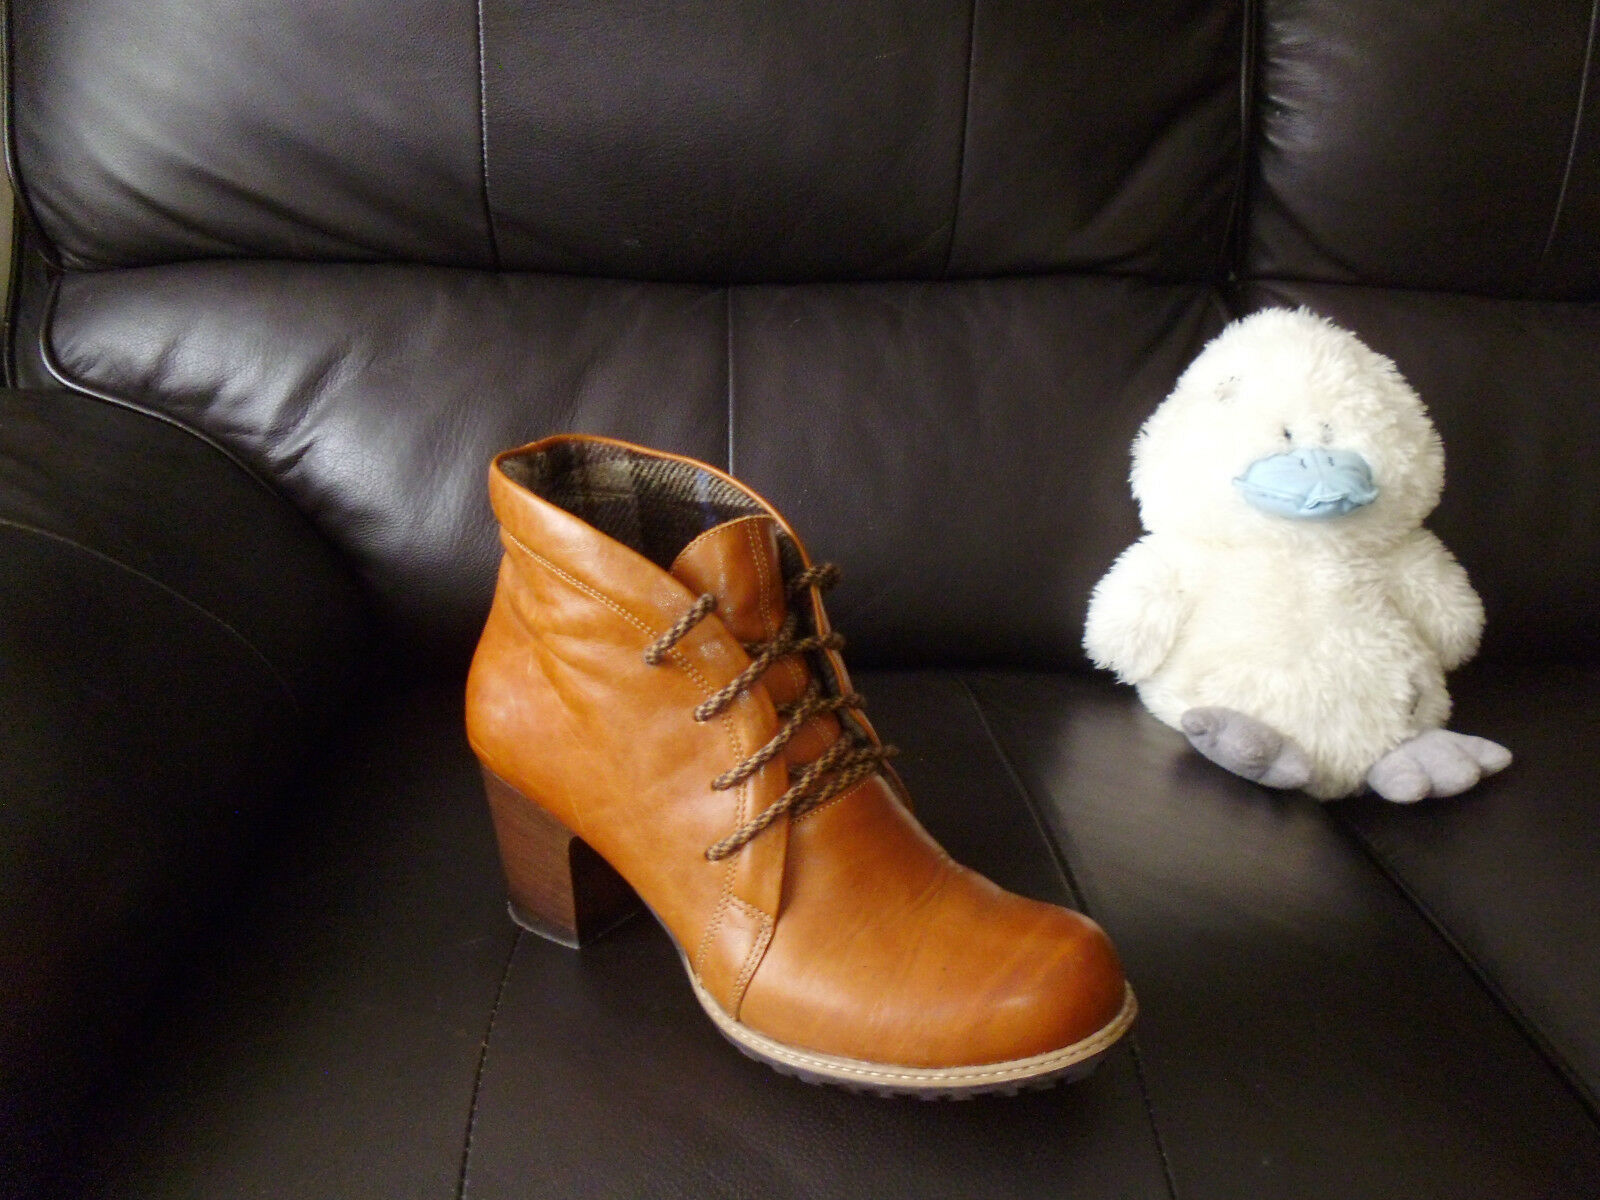 WOMEN LEATHER Stiefel. ELEGANT HEEL Stiefel.  CONDITION. EXCELLENT CONDITION.  SIZE UK 5.5 EU 38 cc4c7d